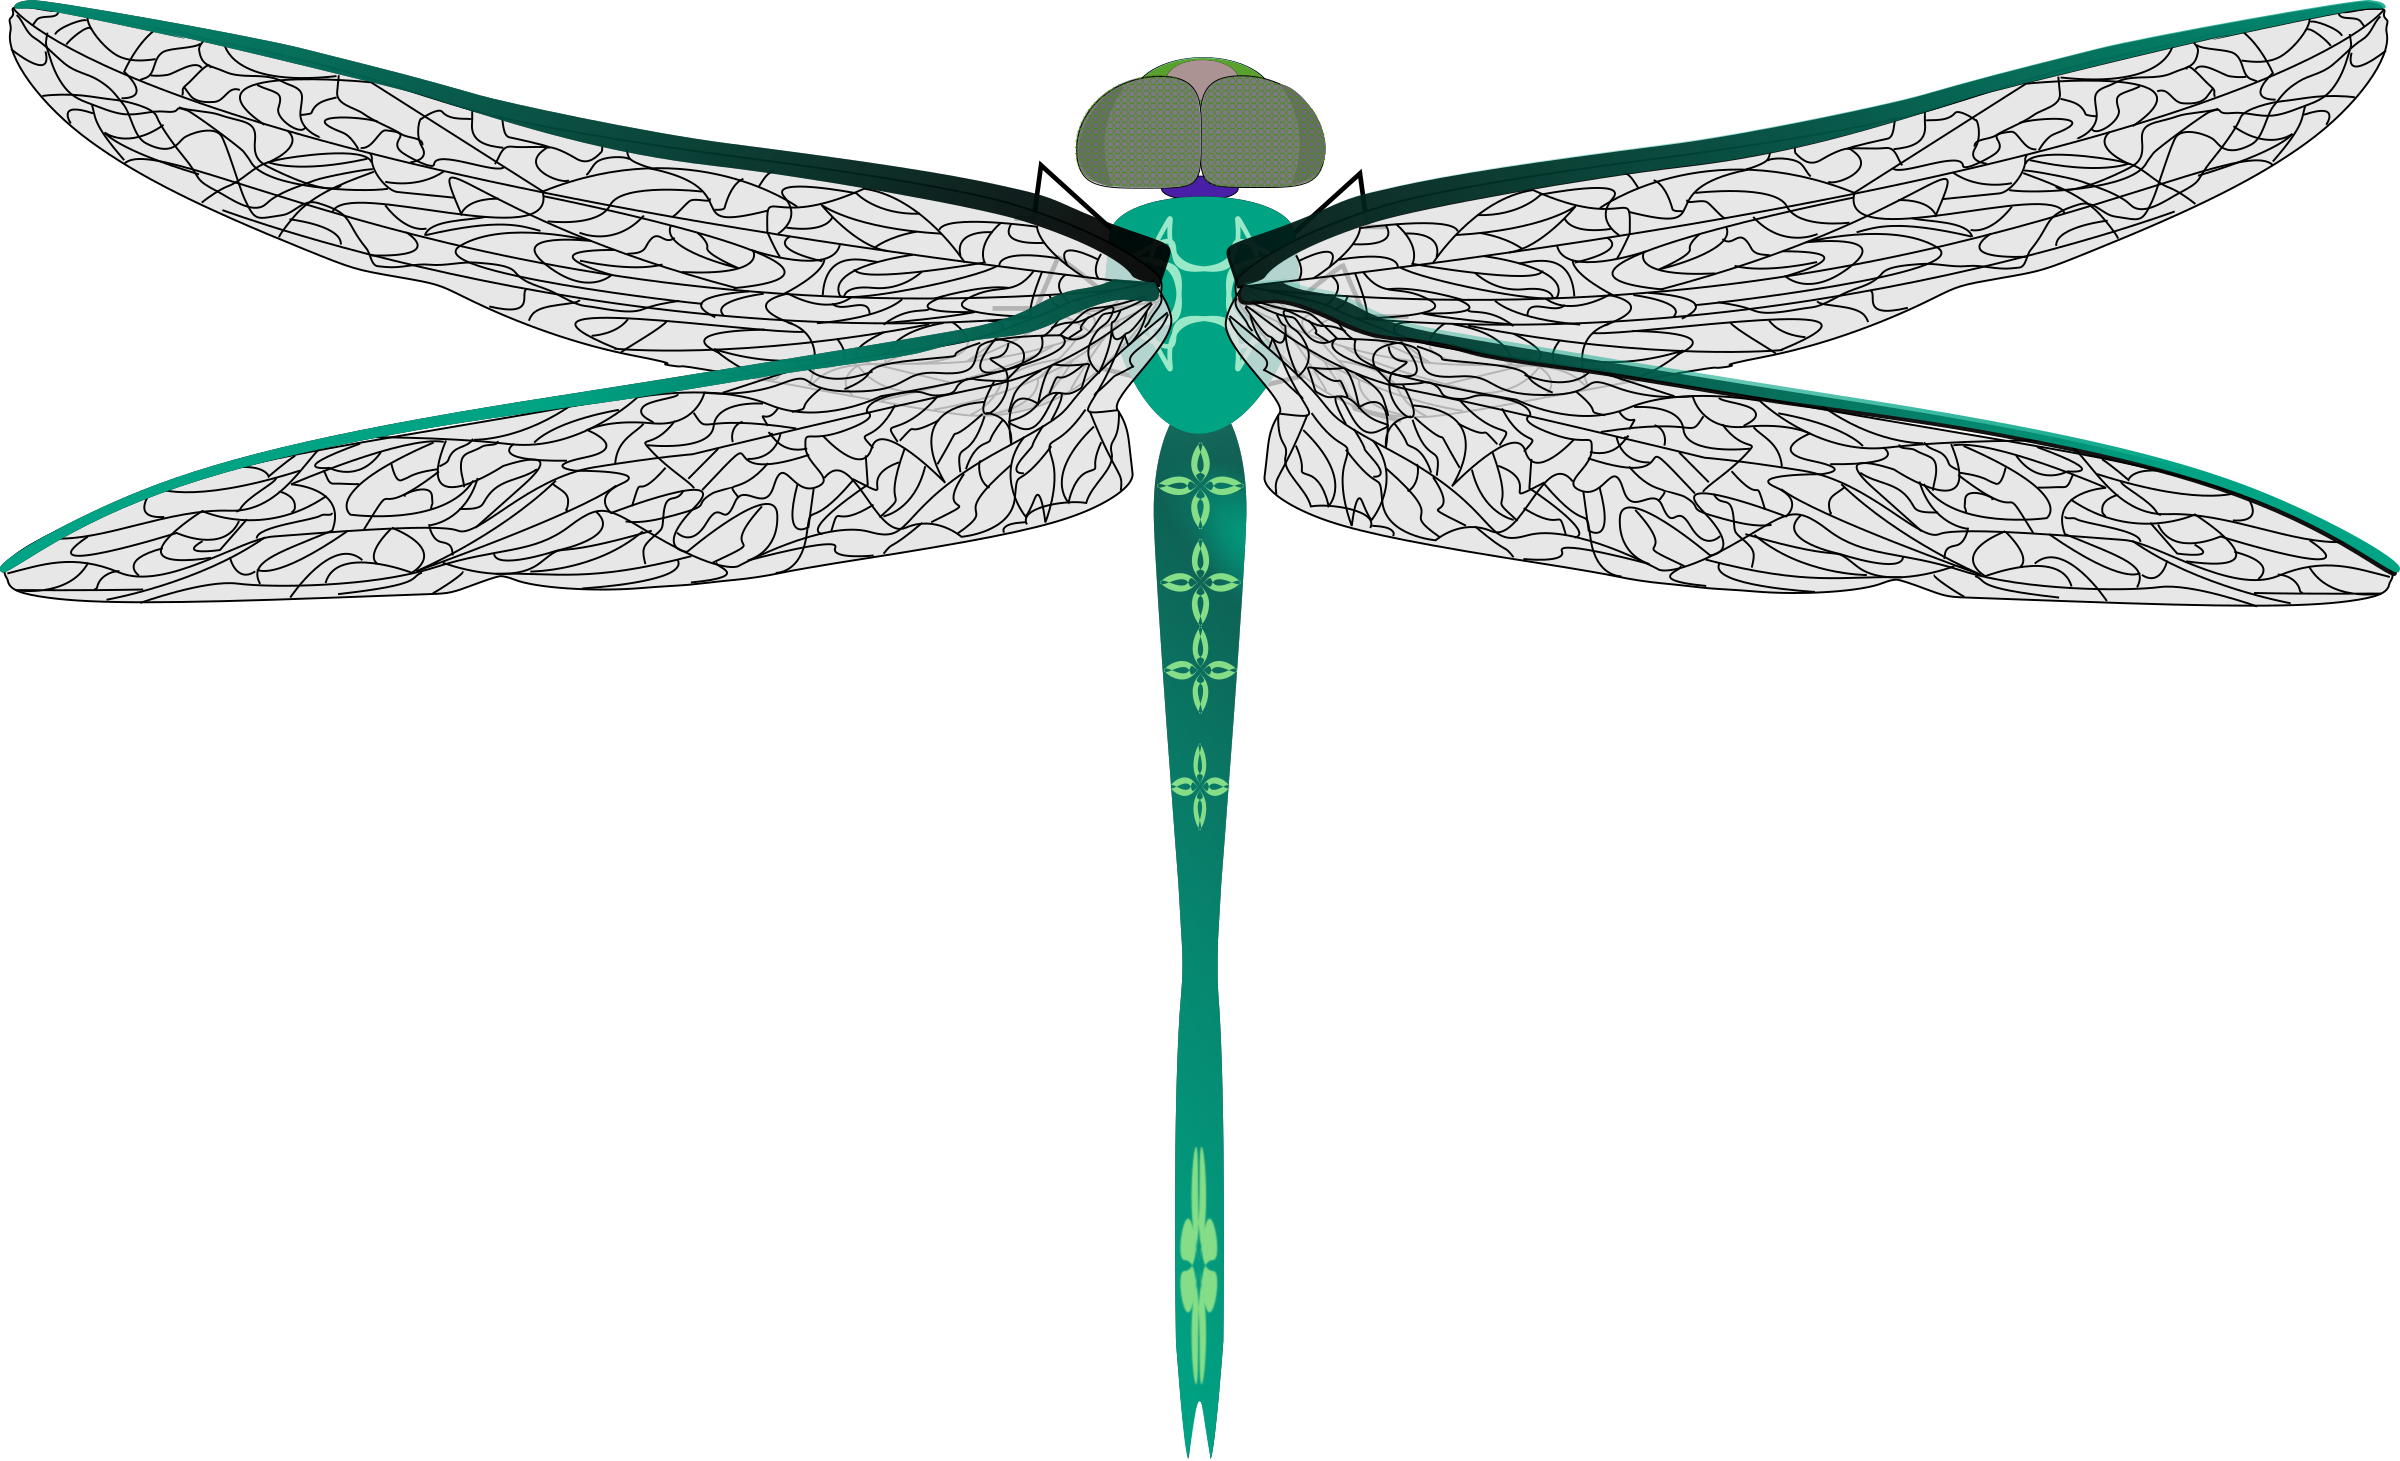 teal dragonfly by Dfly